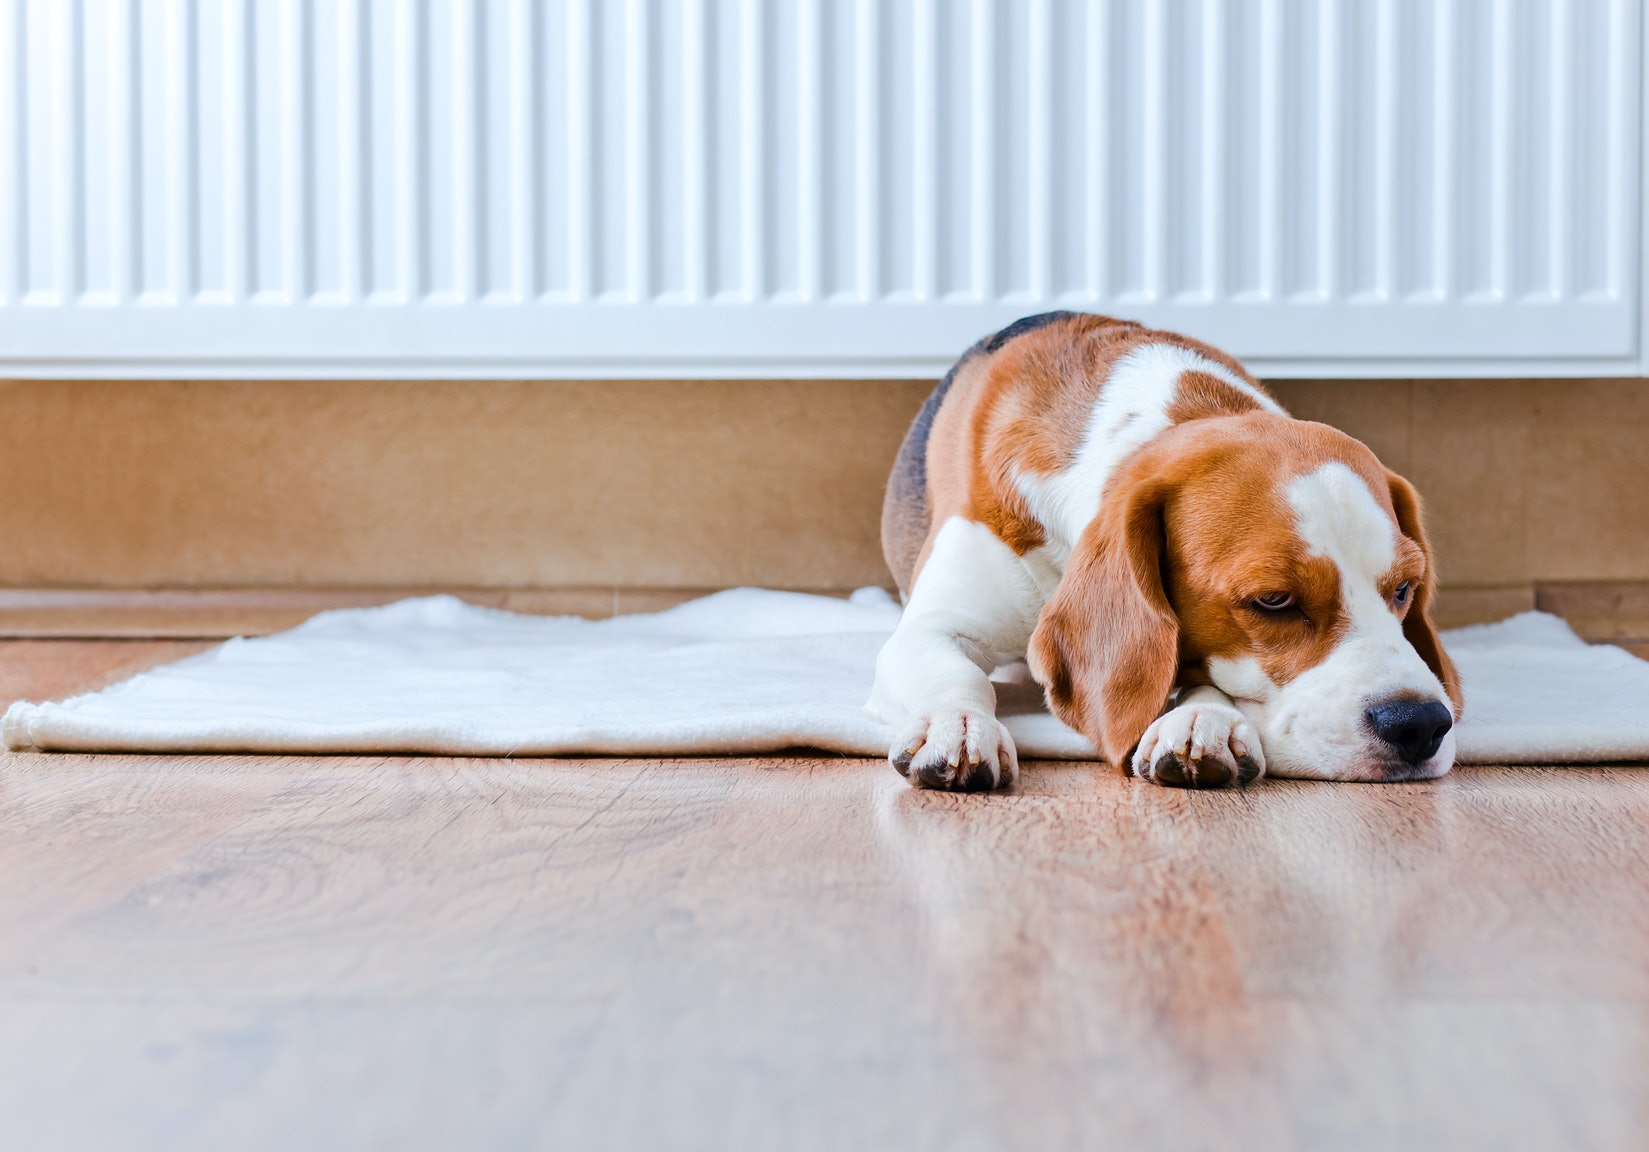 How To Clean Hardwood Floors With Dog Urine Floor Roma